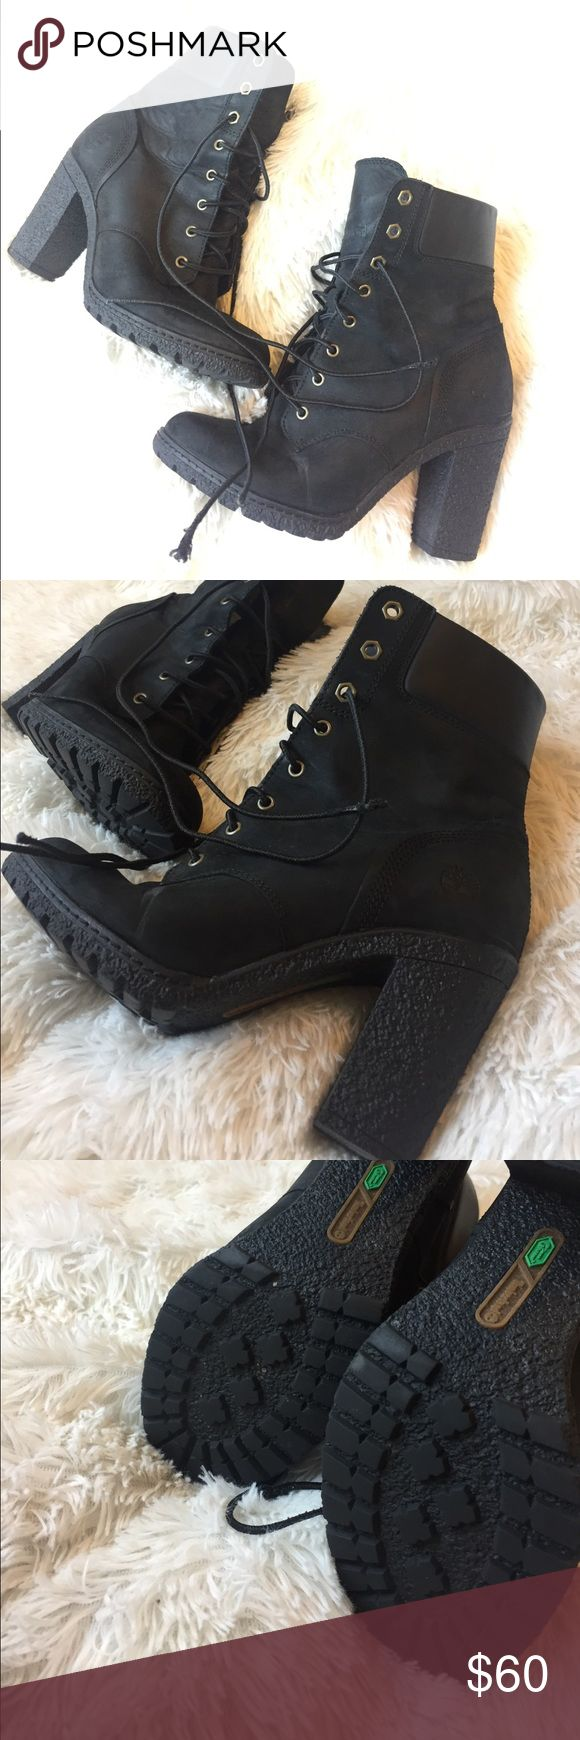 Timberland heel boots Gently used as seen the shoe laces & minimal creasing Timberland Shoes